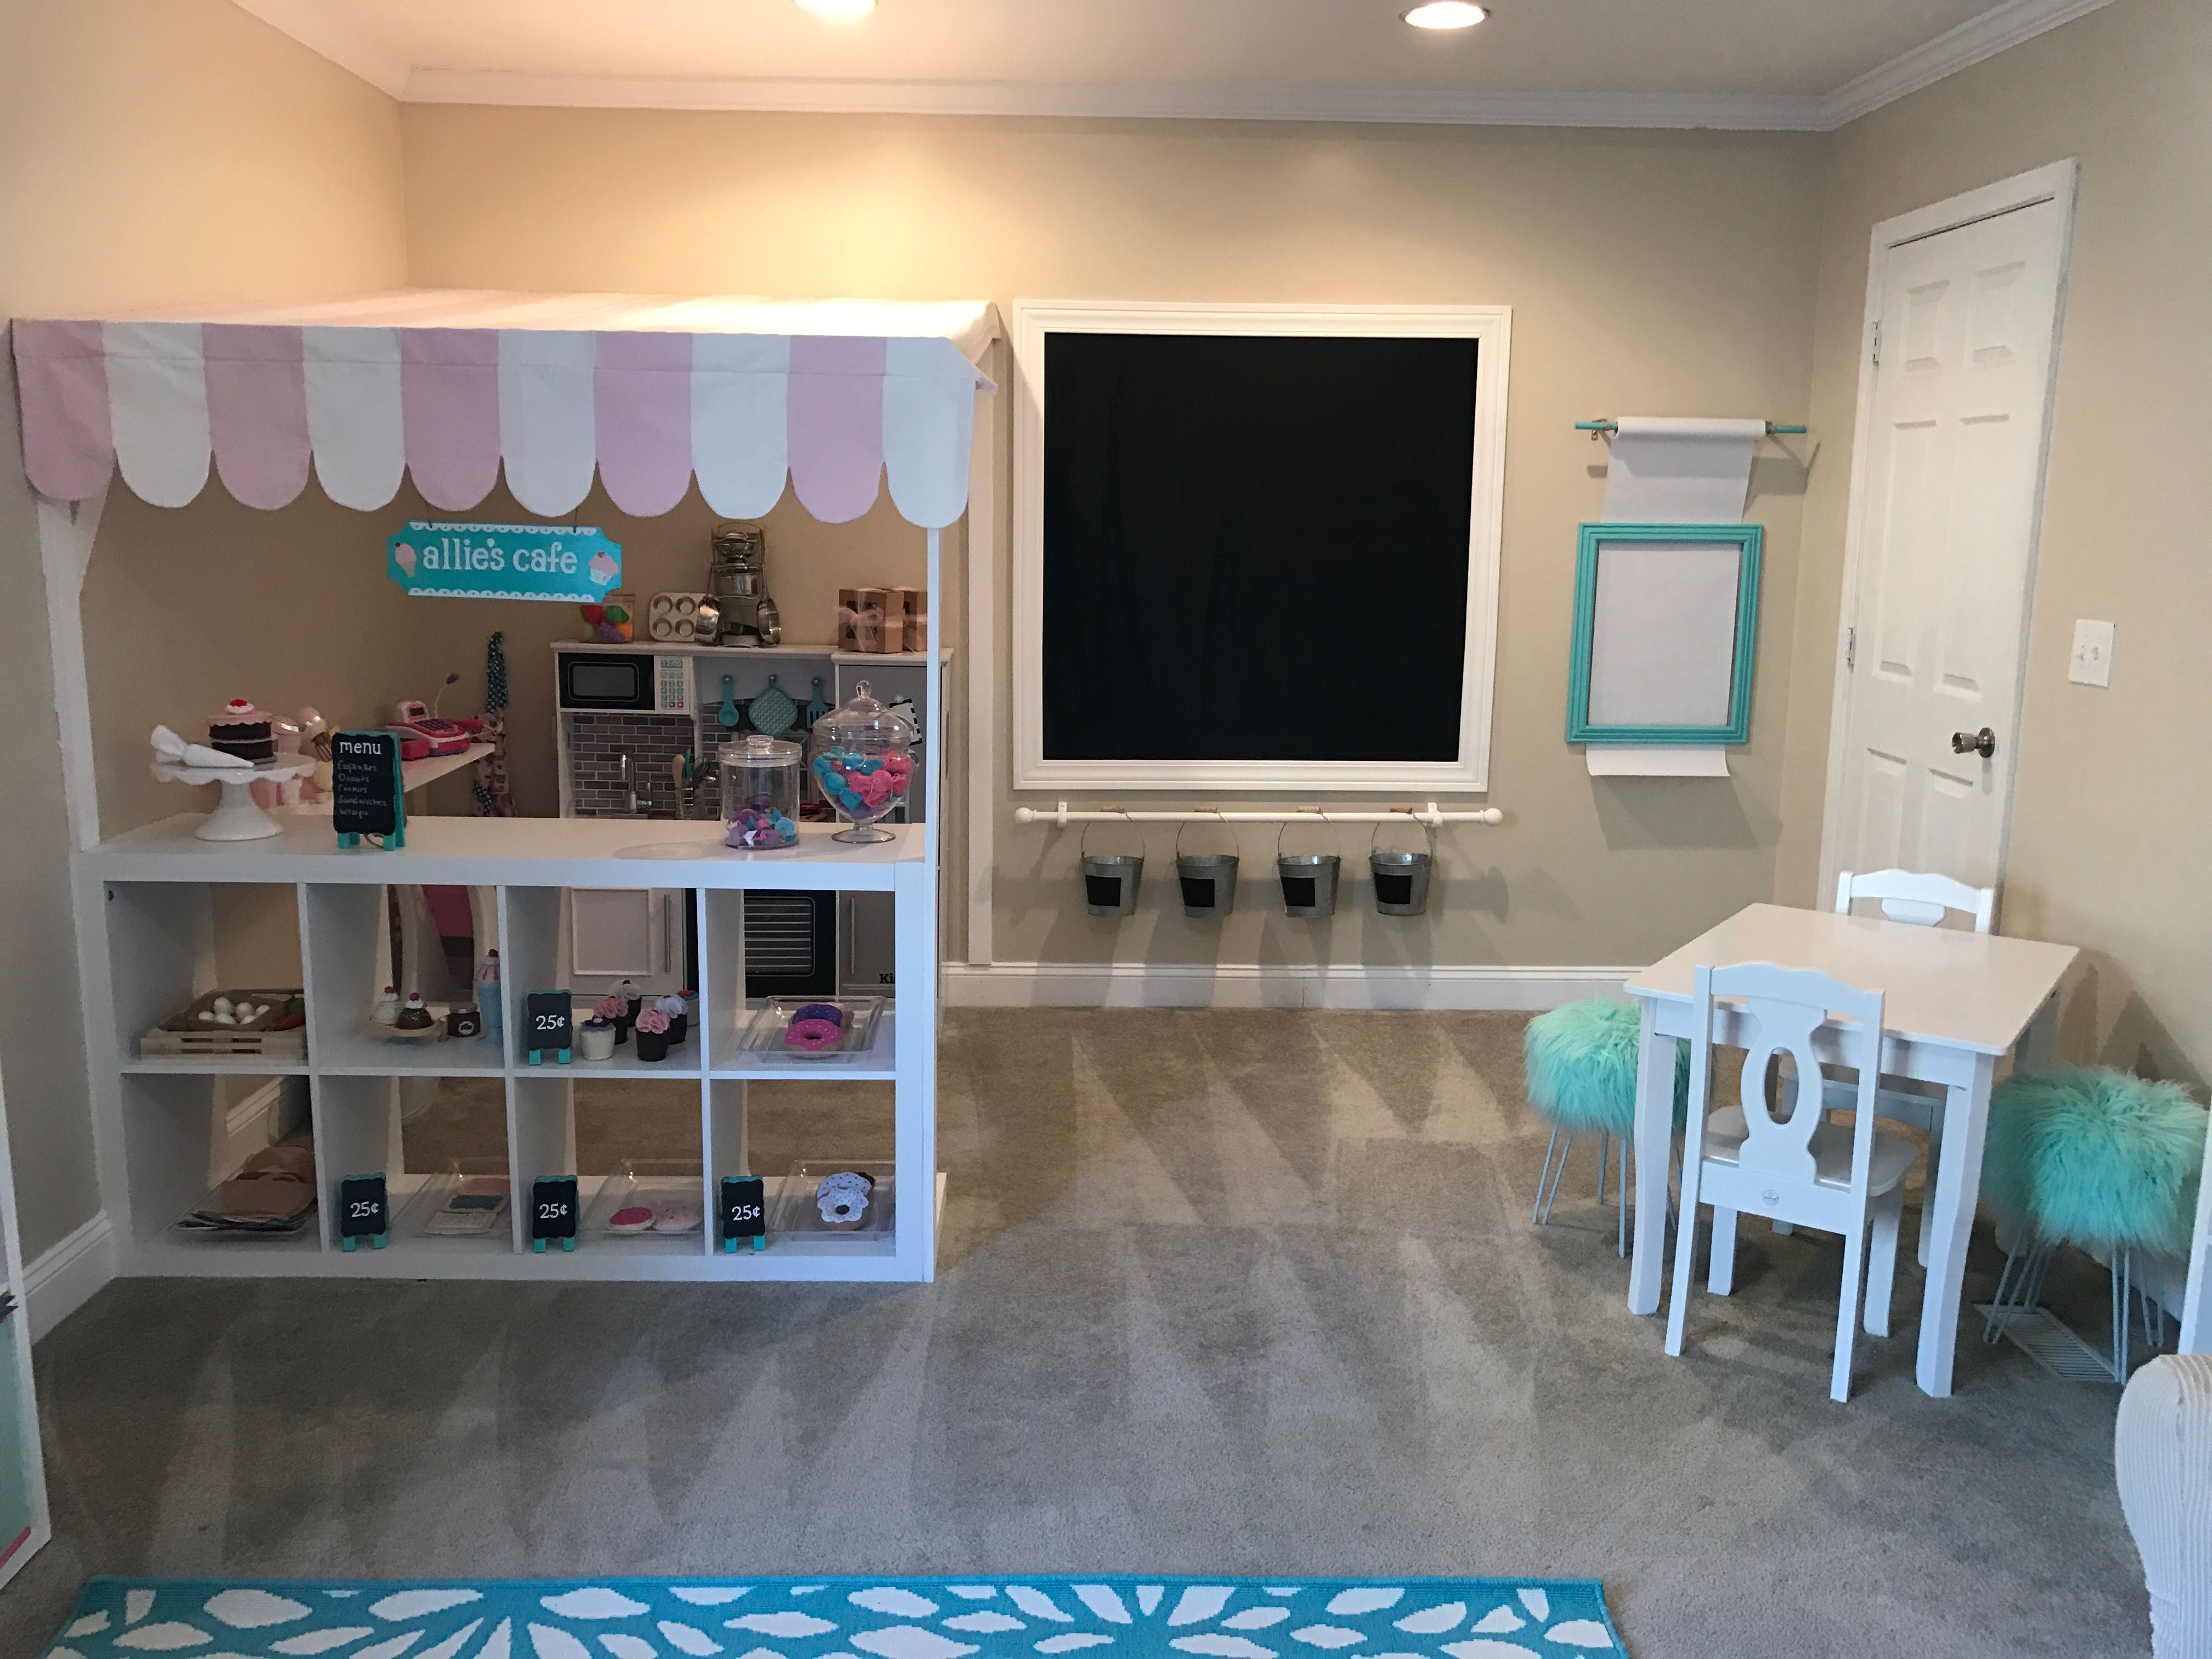 Playroom Ideas. Kids cafe. Kids kitchen play area. Kids art area. Chalkboard